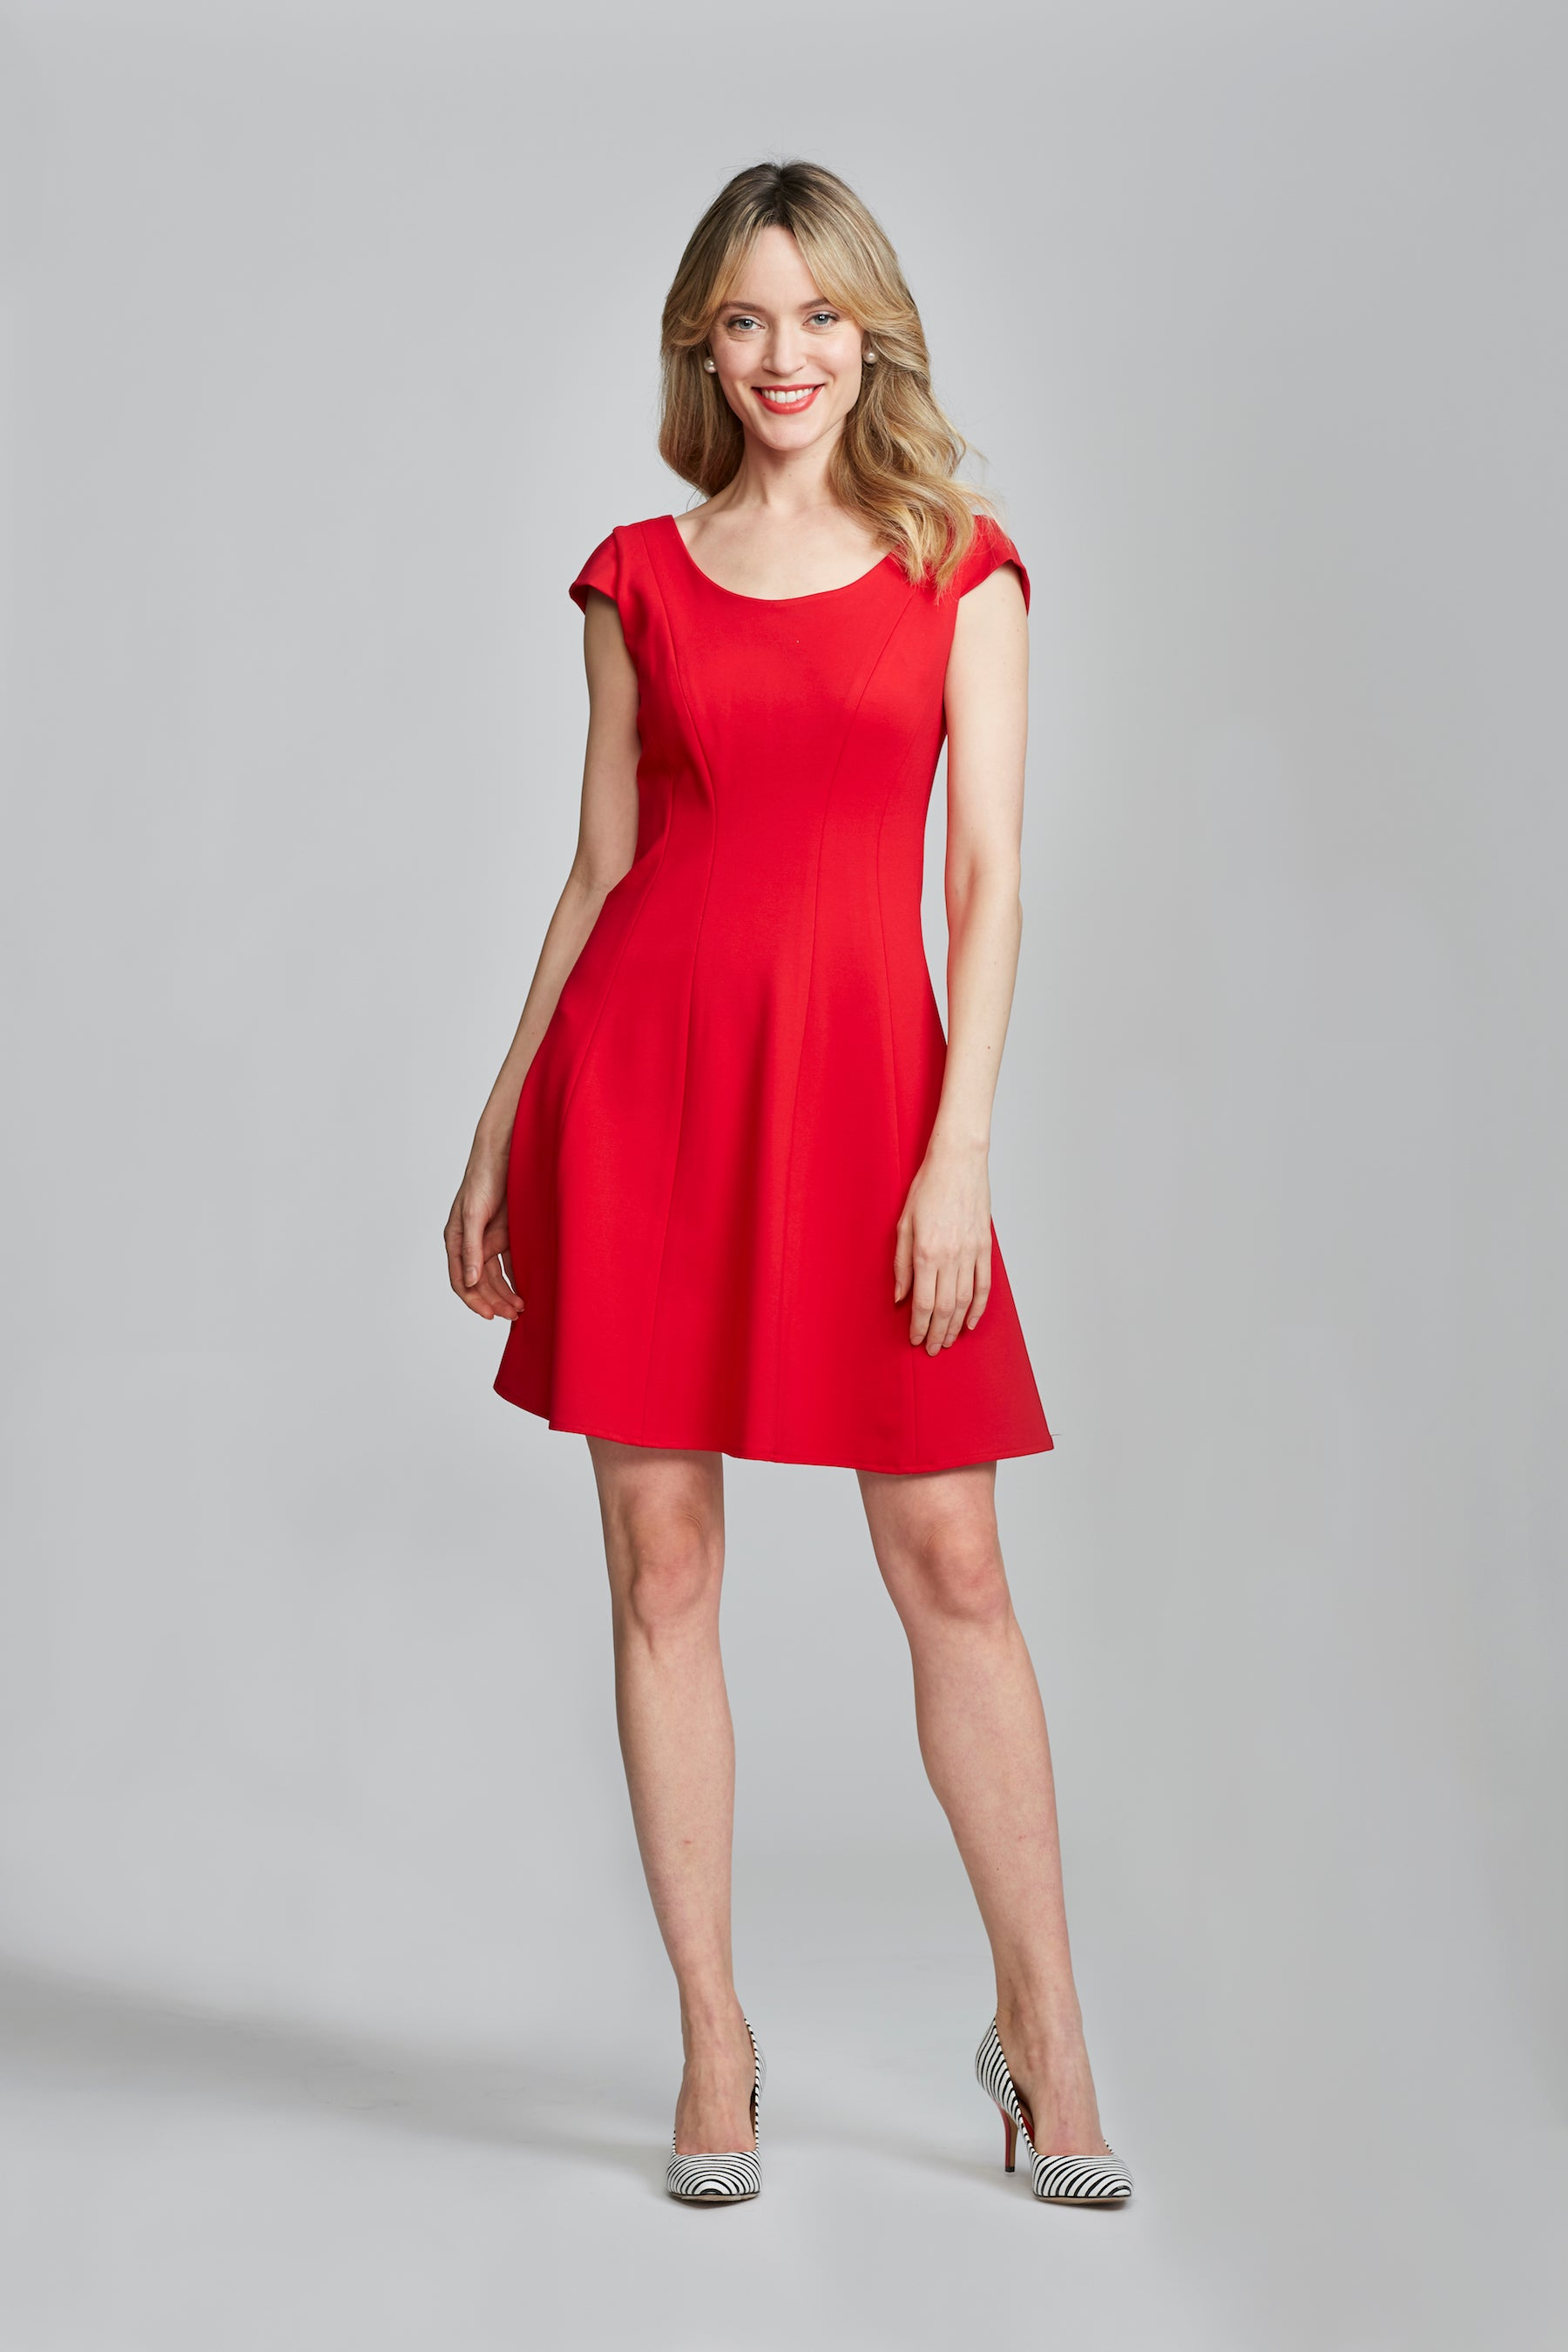 Koko Dress - Bright Red